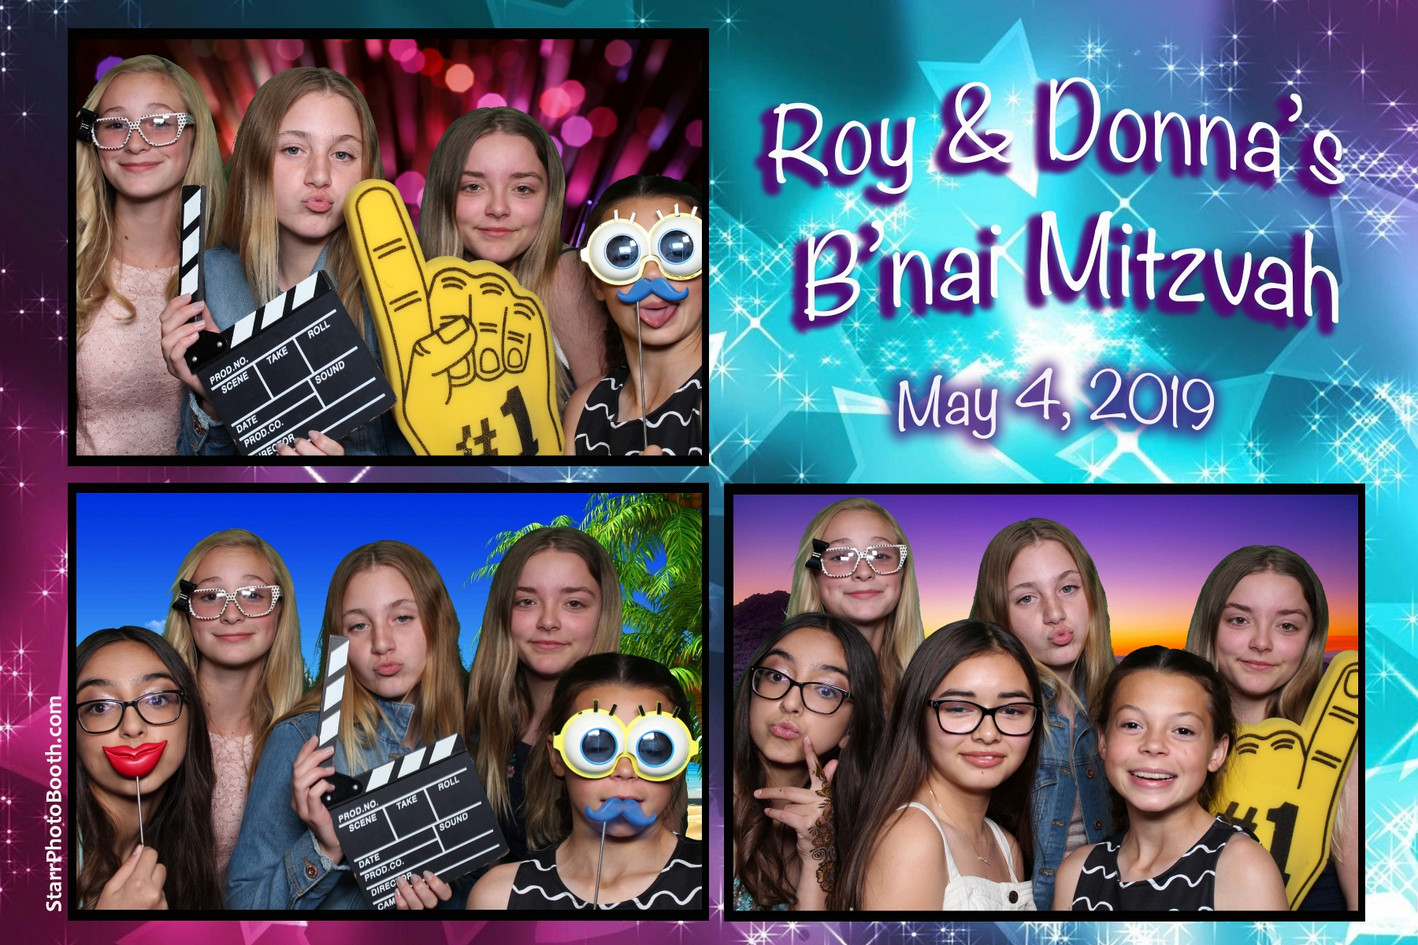 Bat_Mitzvah_Photo Booth.jpg